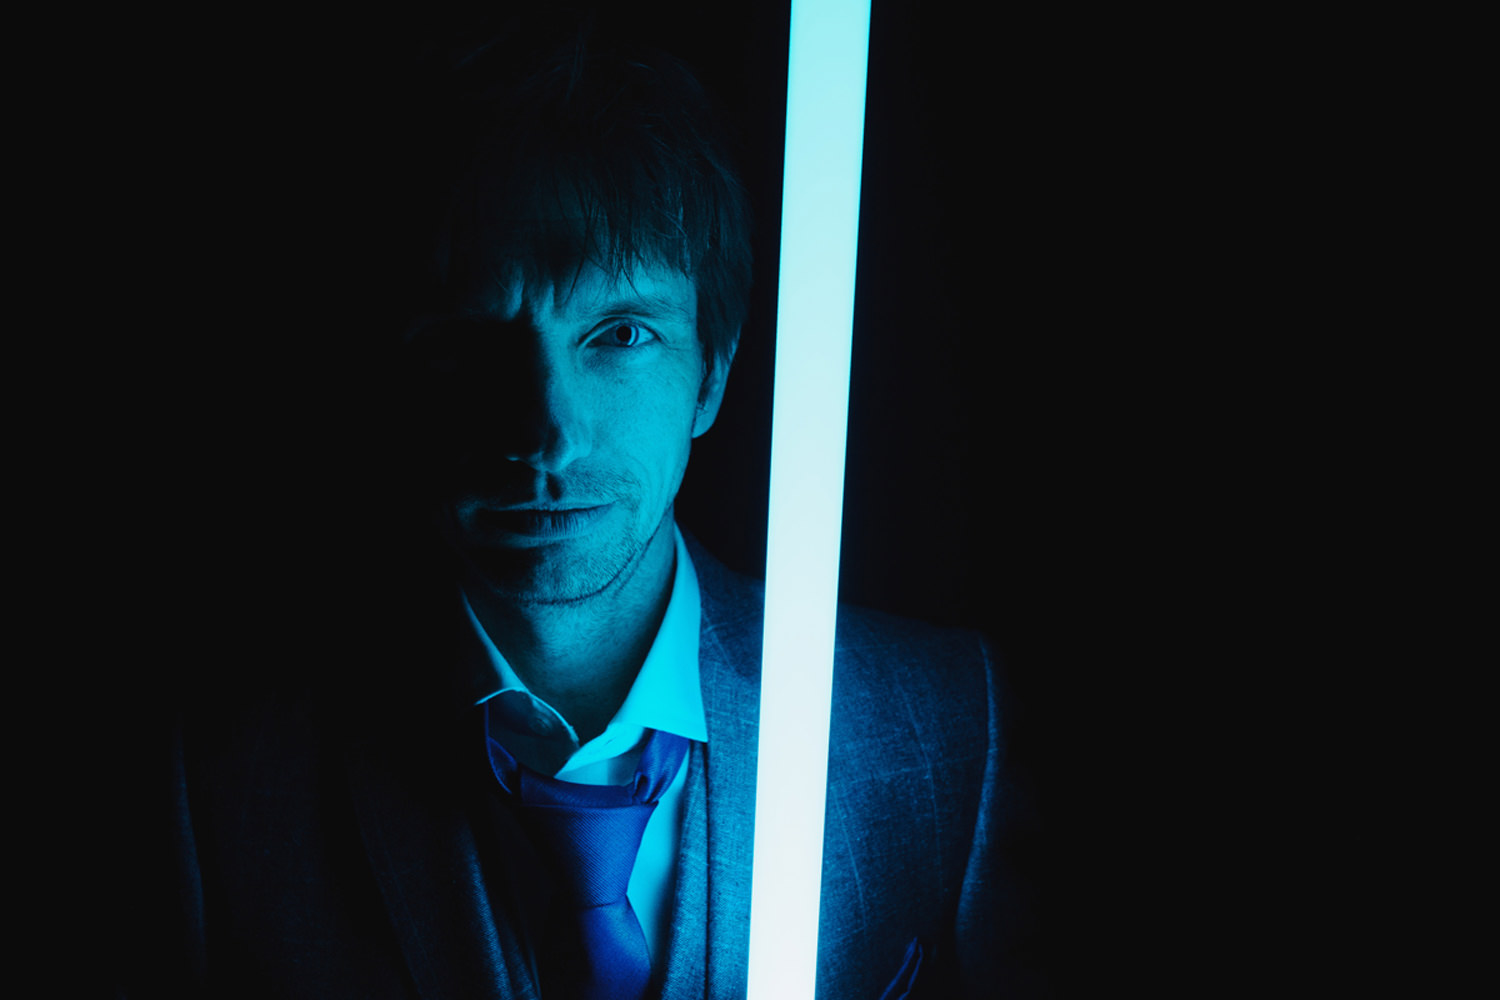 bride and groom pose with light saber from star wars in the dark